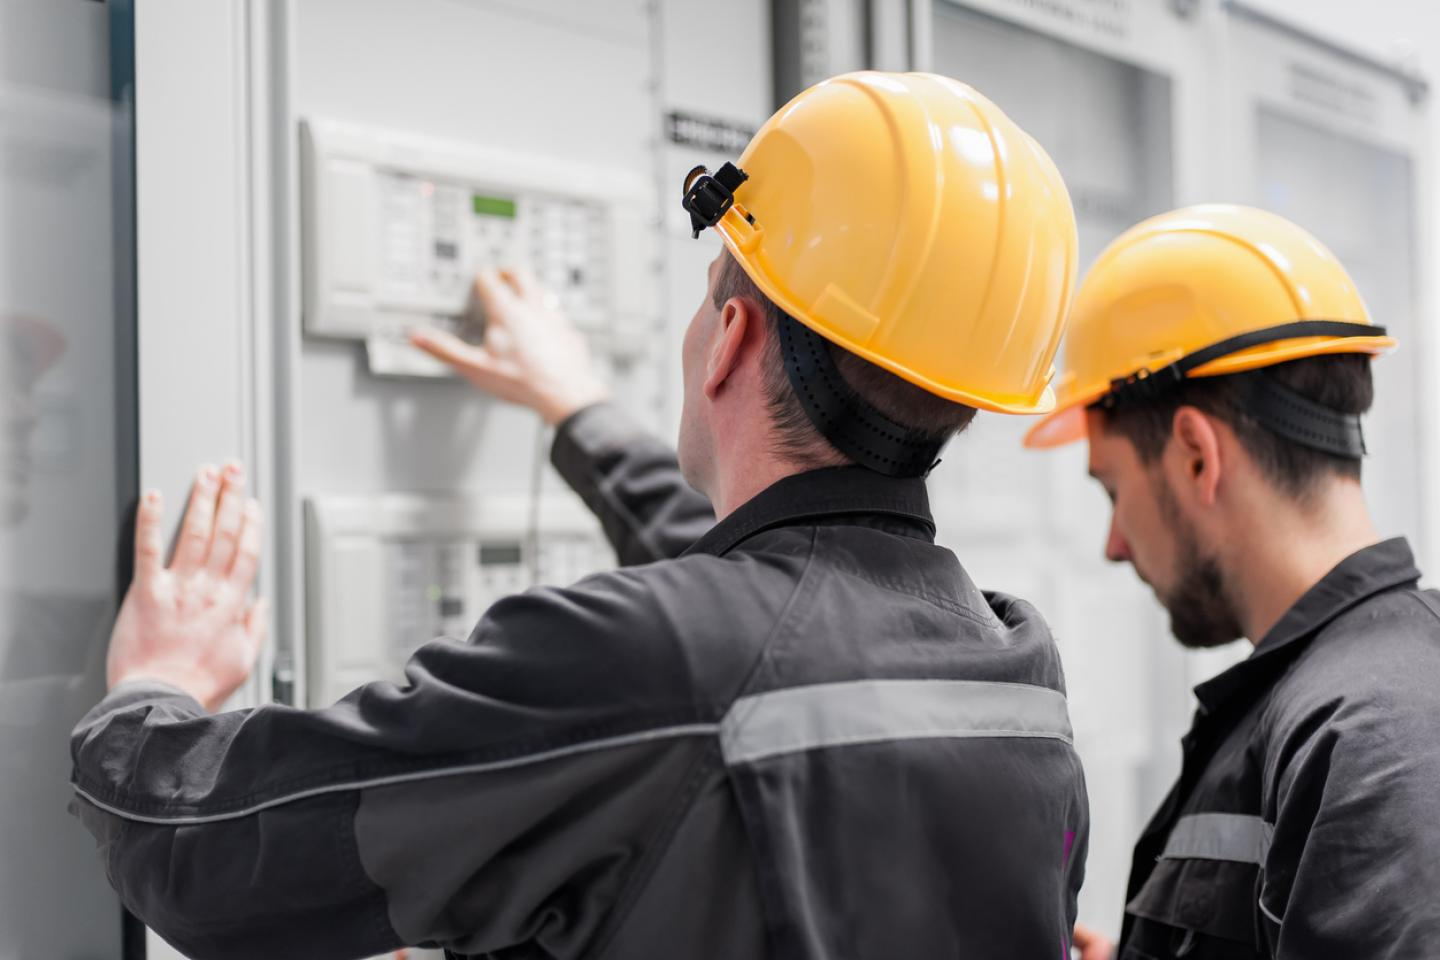 Maintenance workers investigating an electrical panel